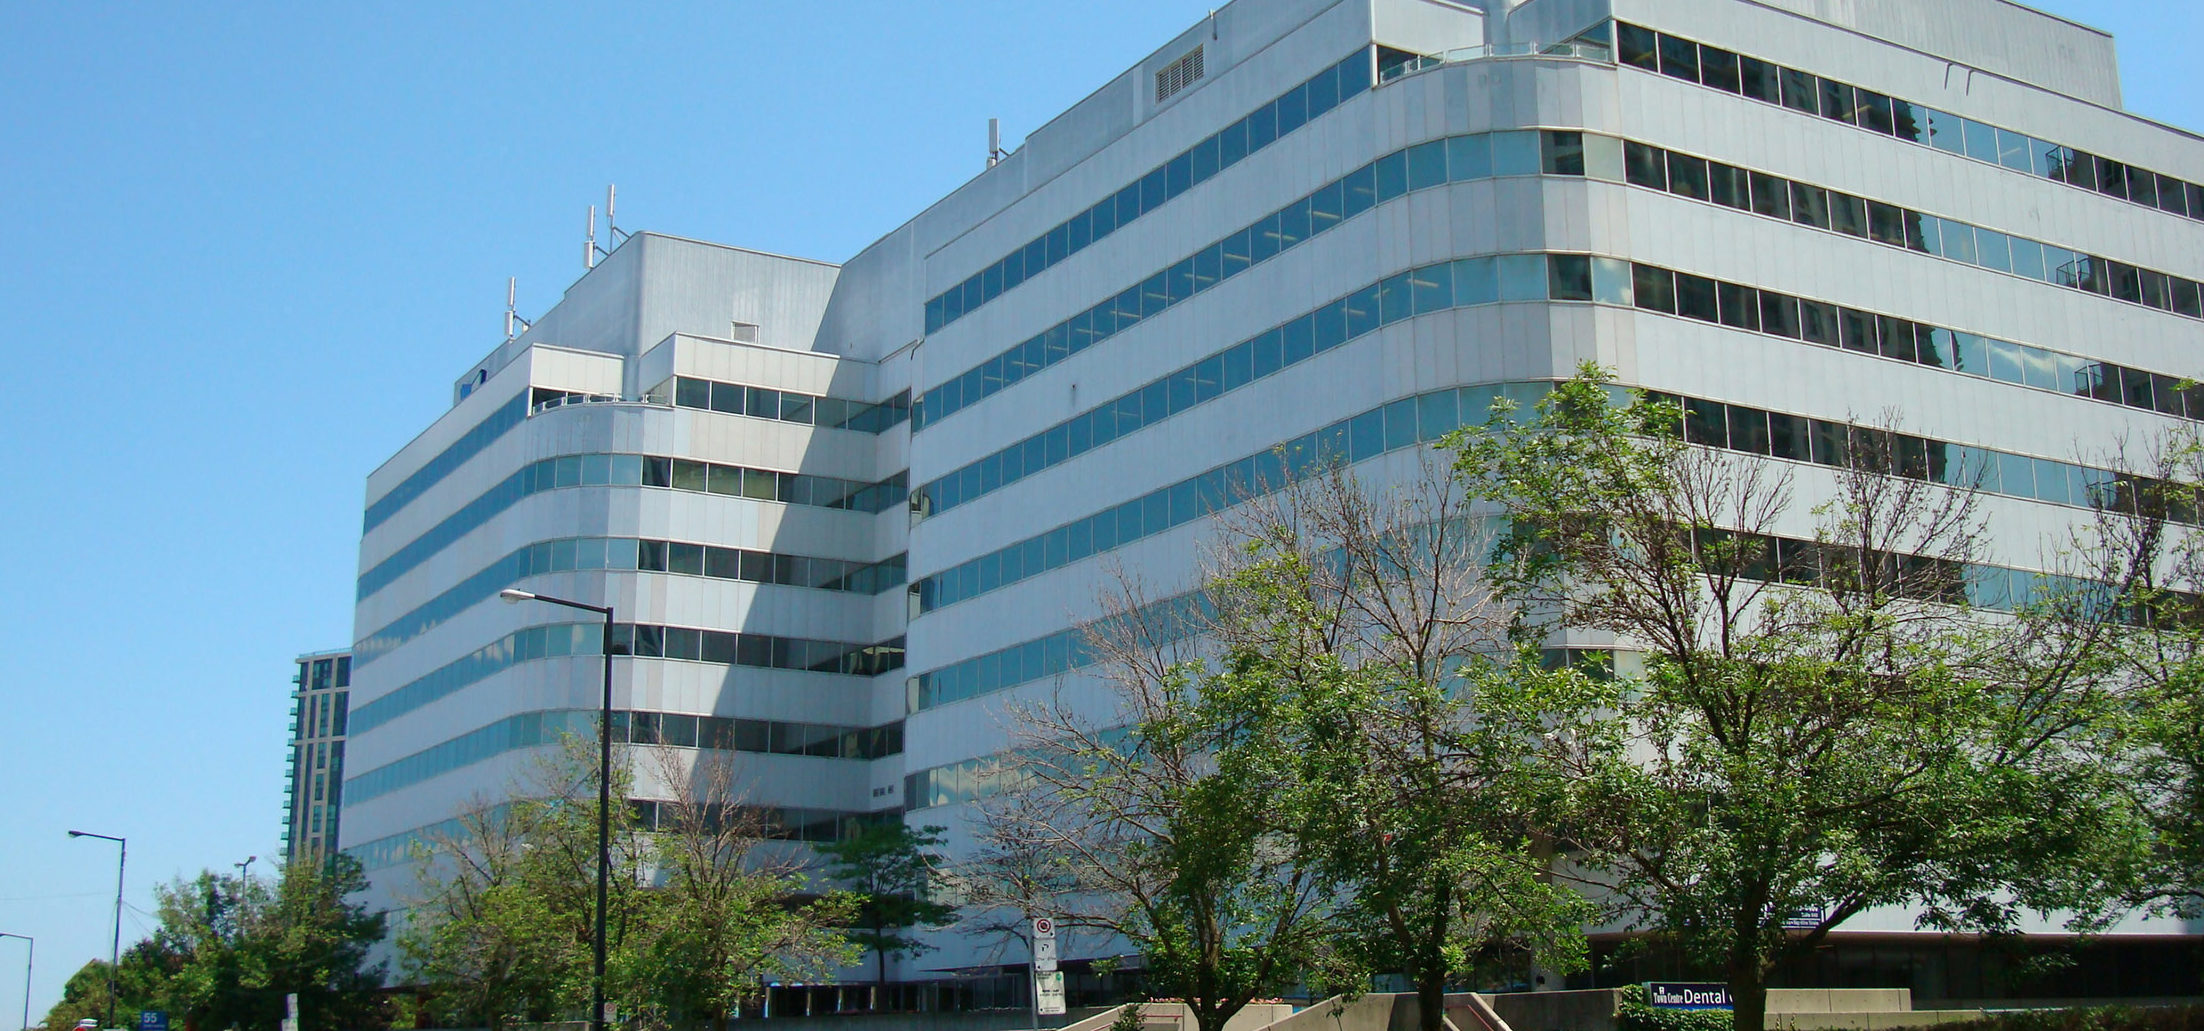 The TIPT building where you can visit or contact them